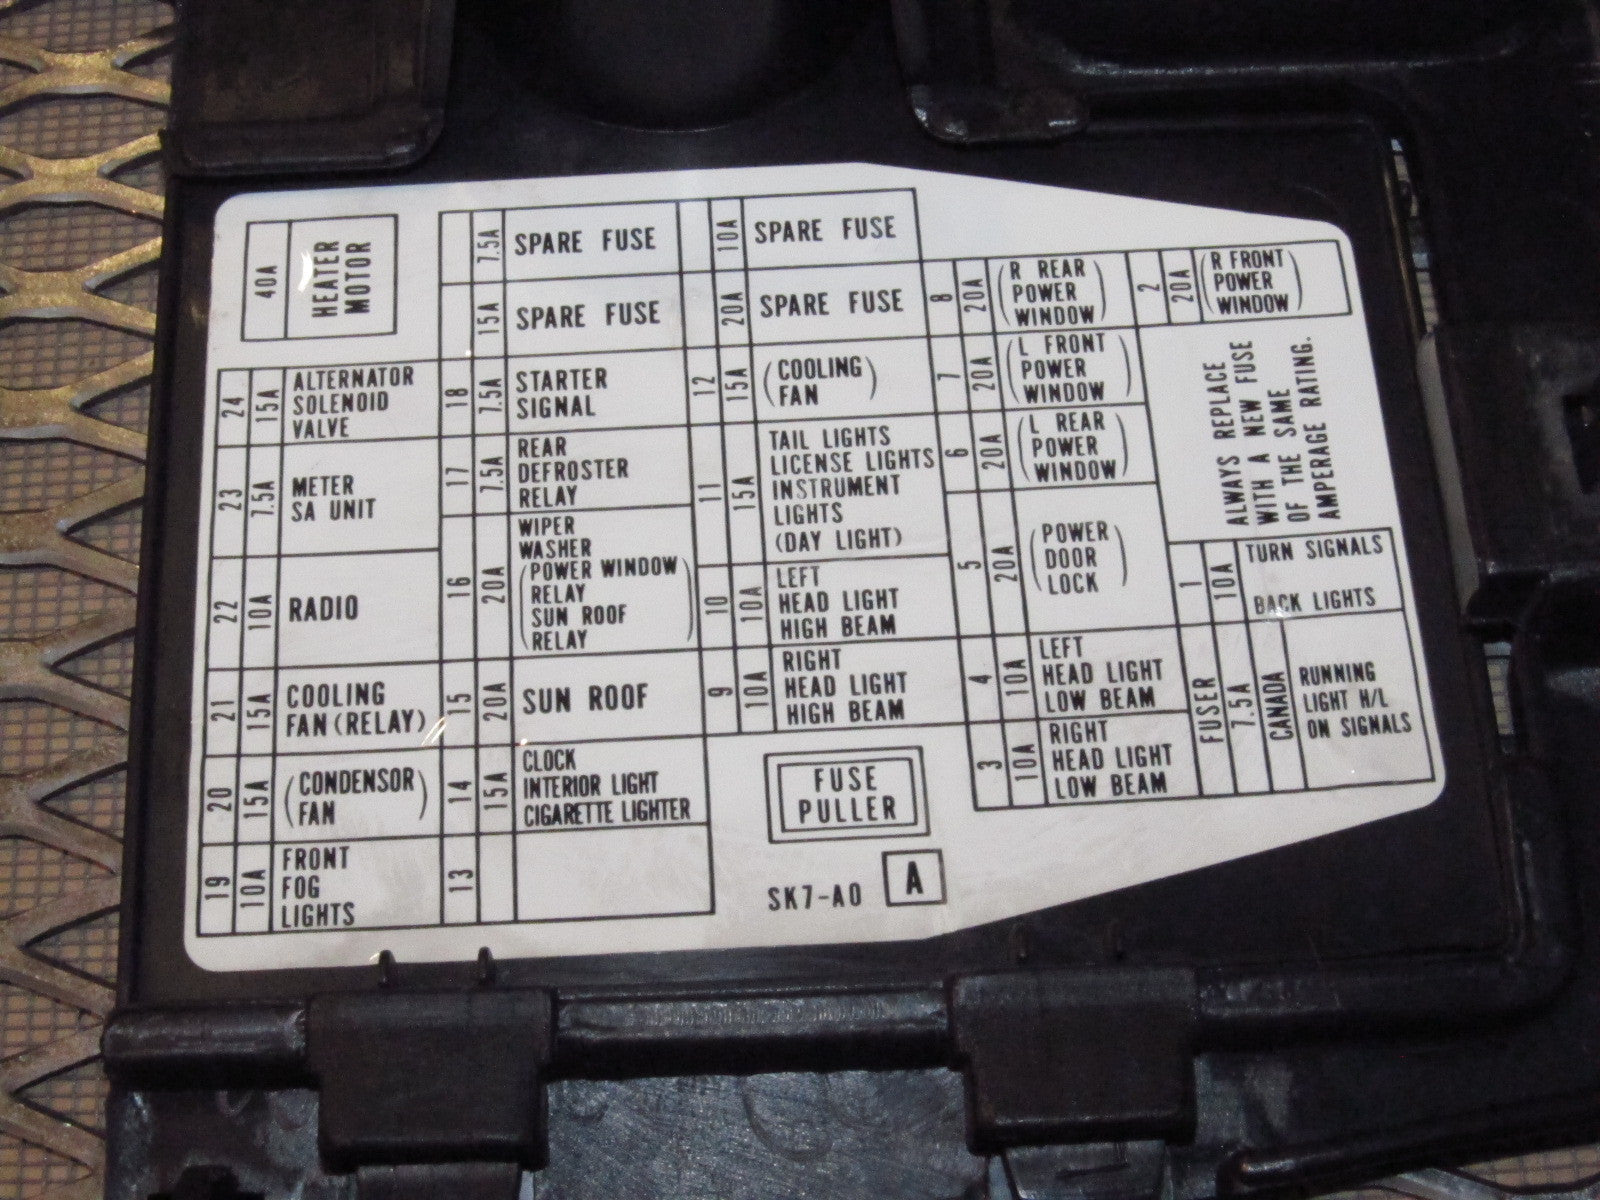 2001 Acura Integra Fuse Box Trusted Wiring Diagram Mitsubishi Montero Diy Enthusiasts Diagrams U2022 Sport